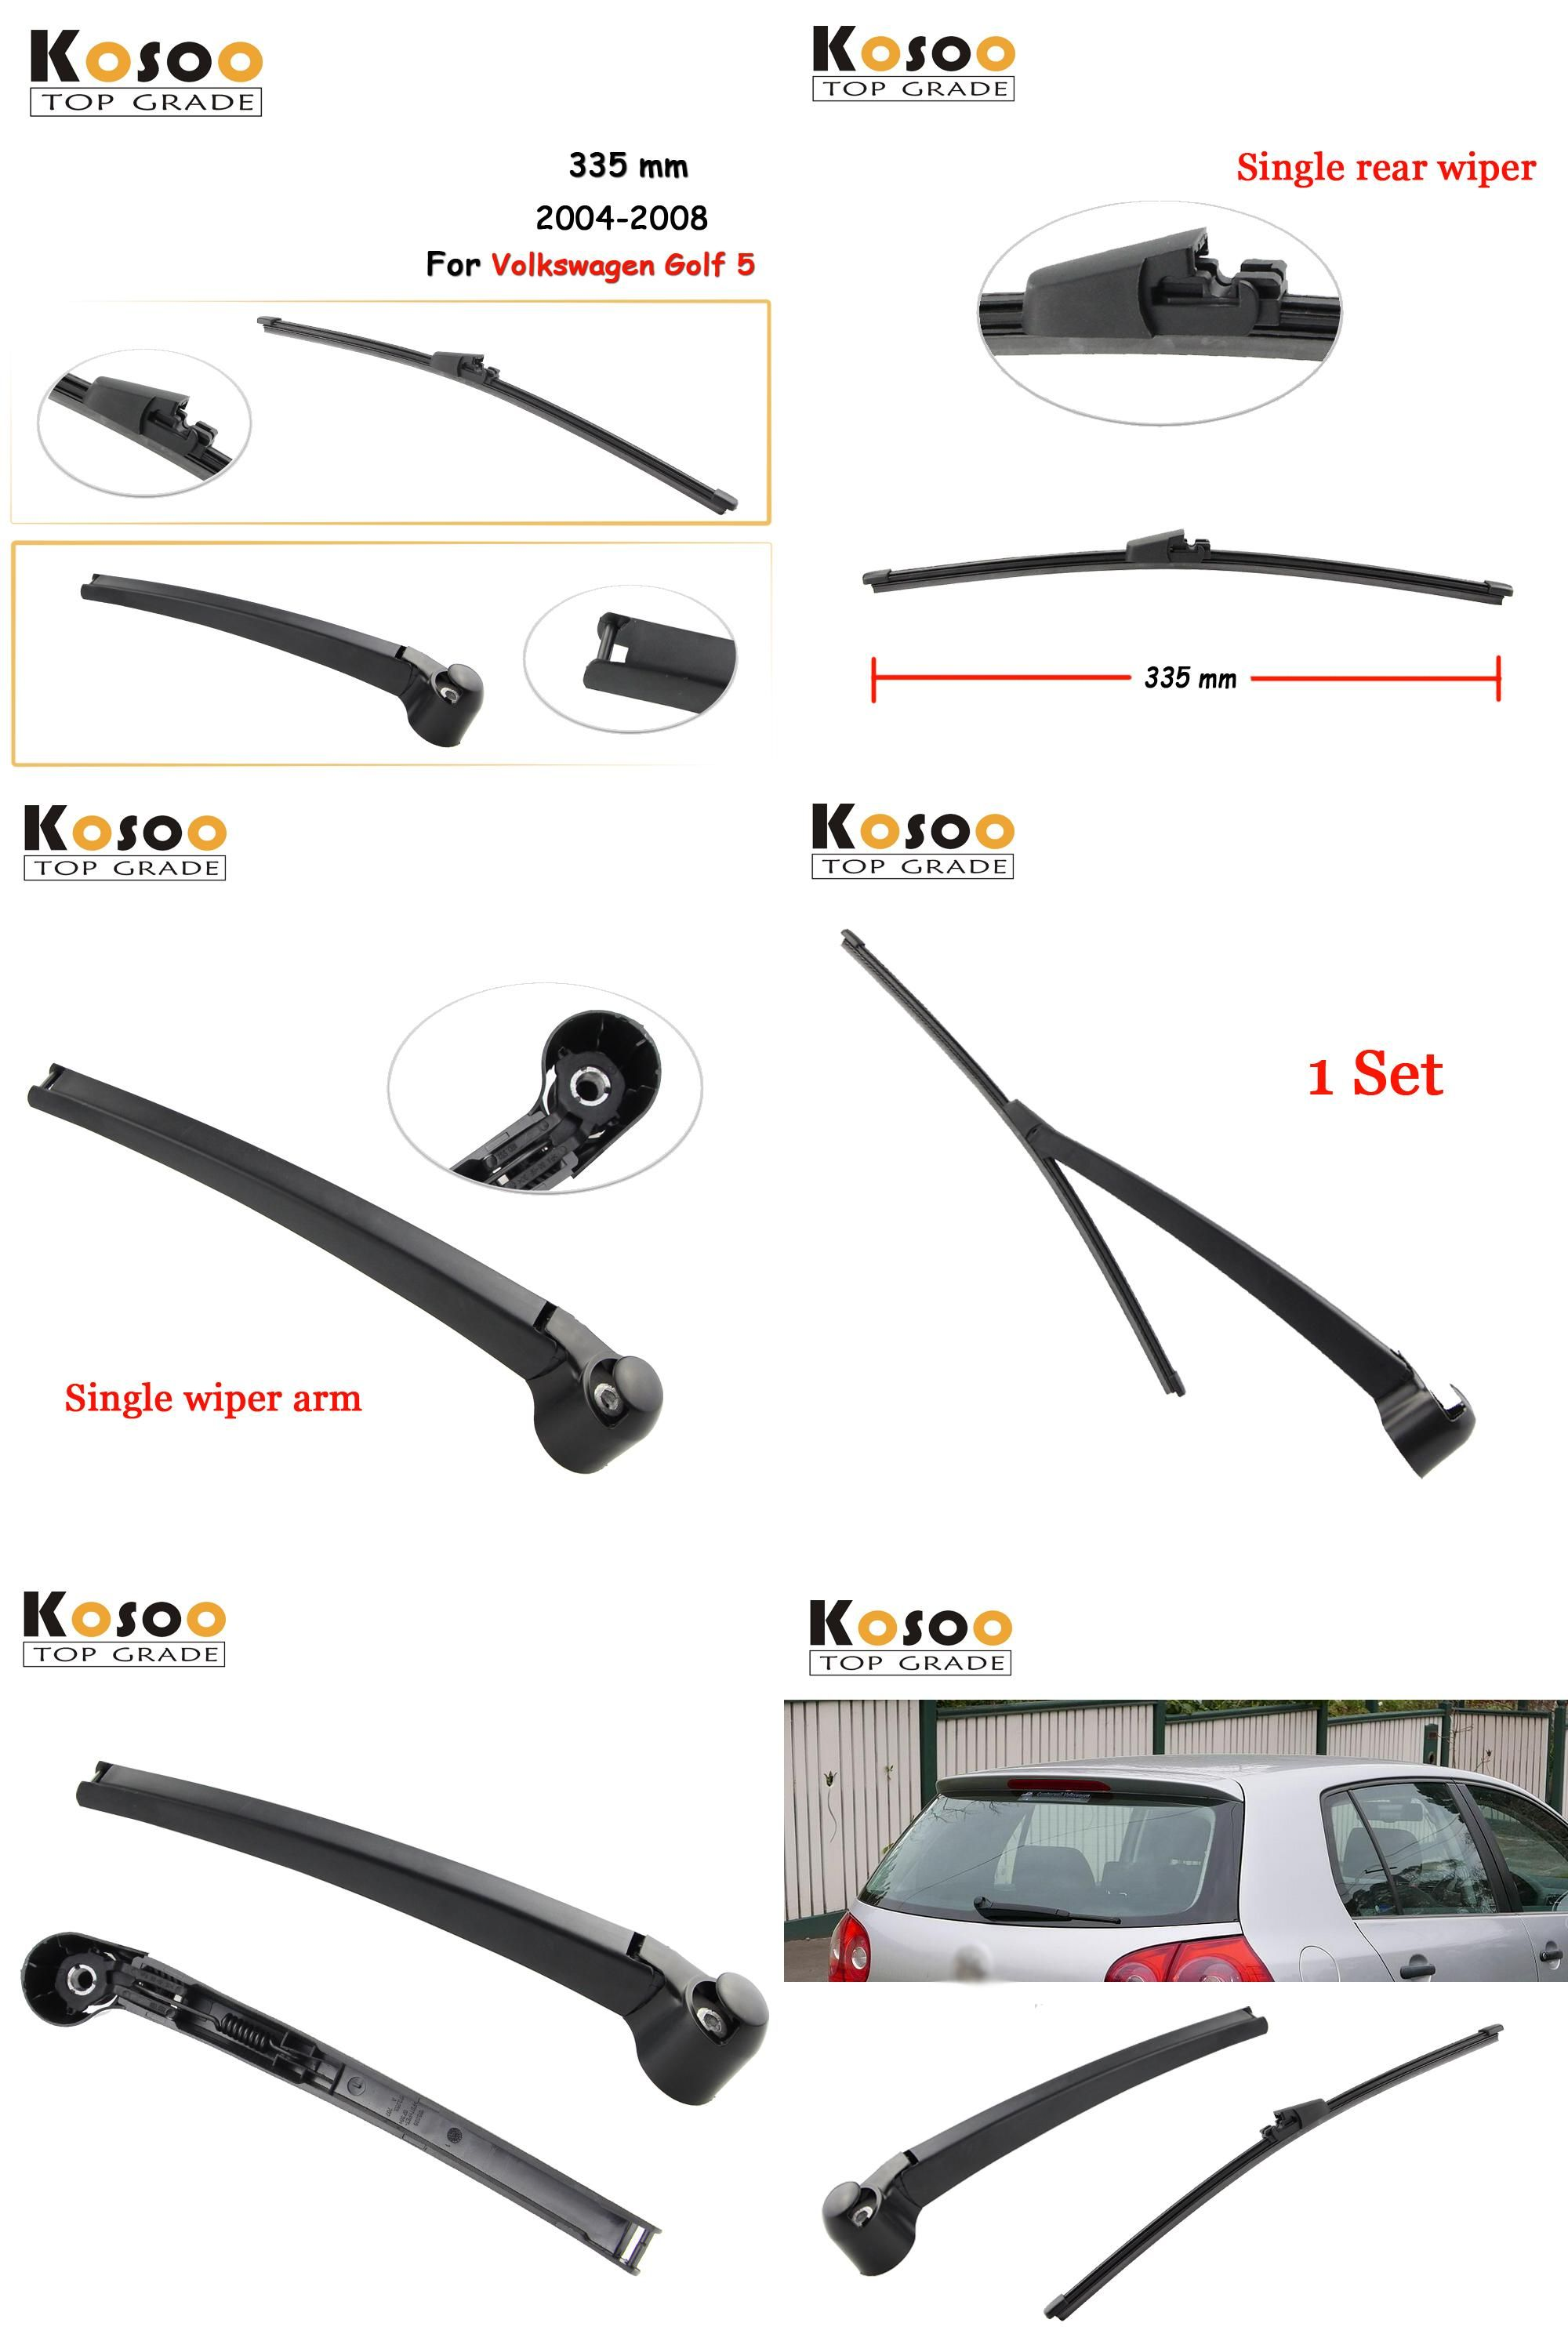 Visit To Buy Kosoo Auto Rear Car Wiper Blade For Volkswagen Golf 5 335mm 2004 2008 Rear Window Windshield Wiper B Car Wiper Volkswagen Golf Windshield Wipers